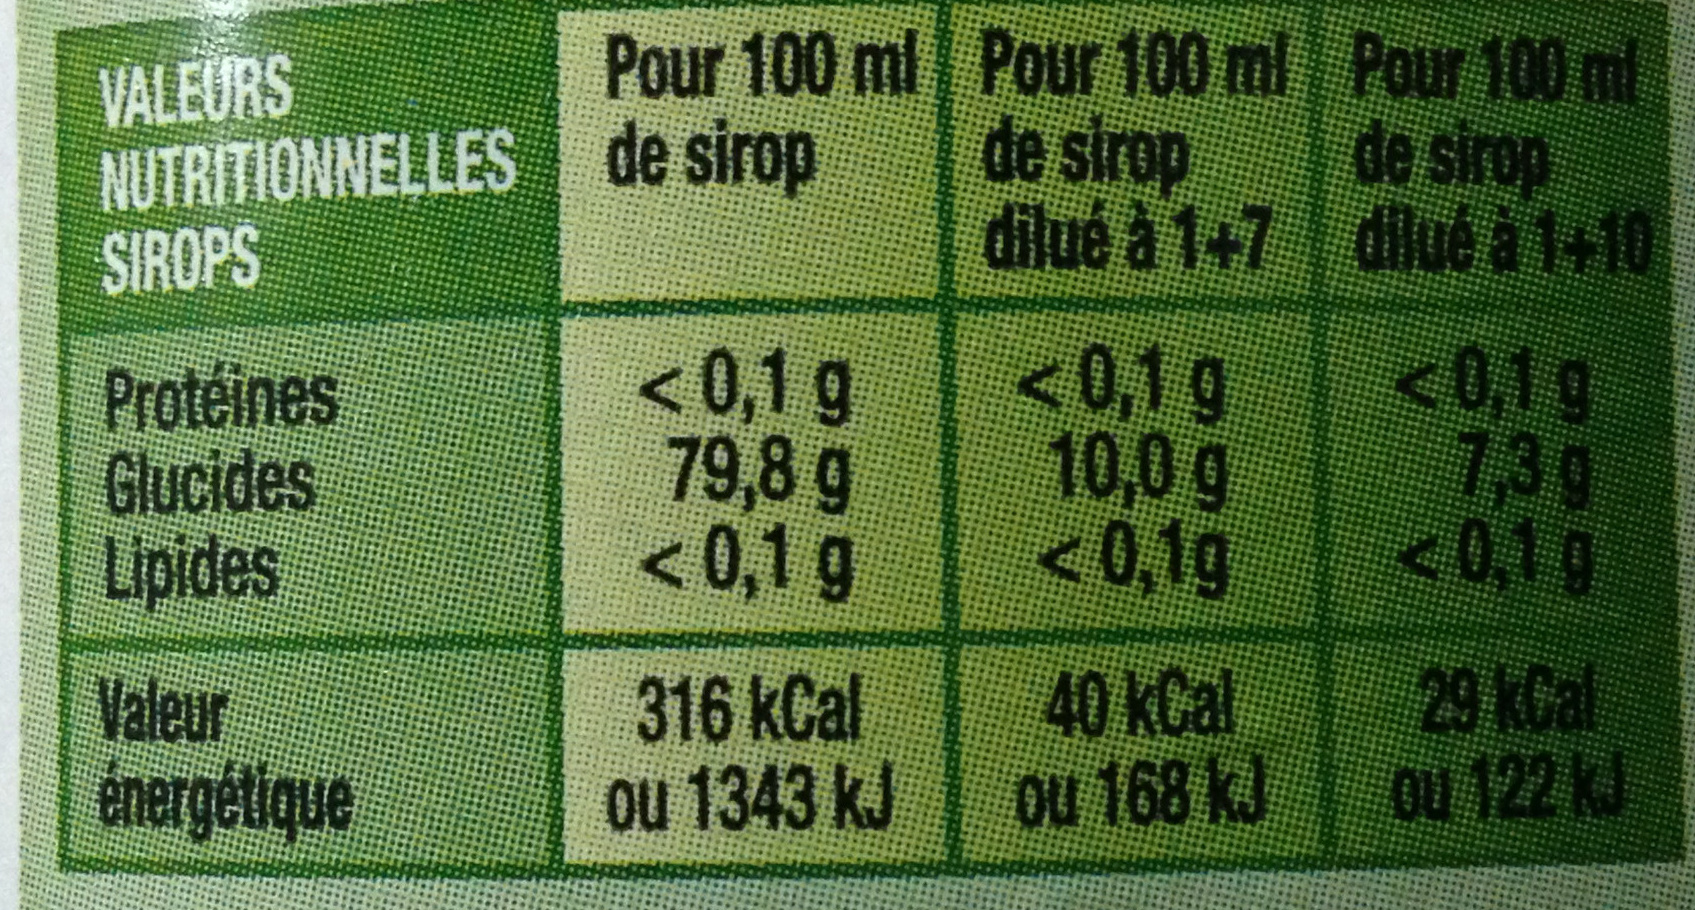 Sirop Menthe Pur Canne - Nutrition facts - fr